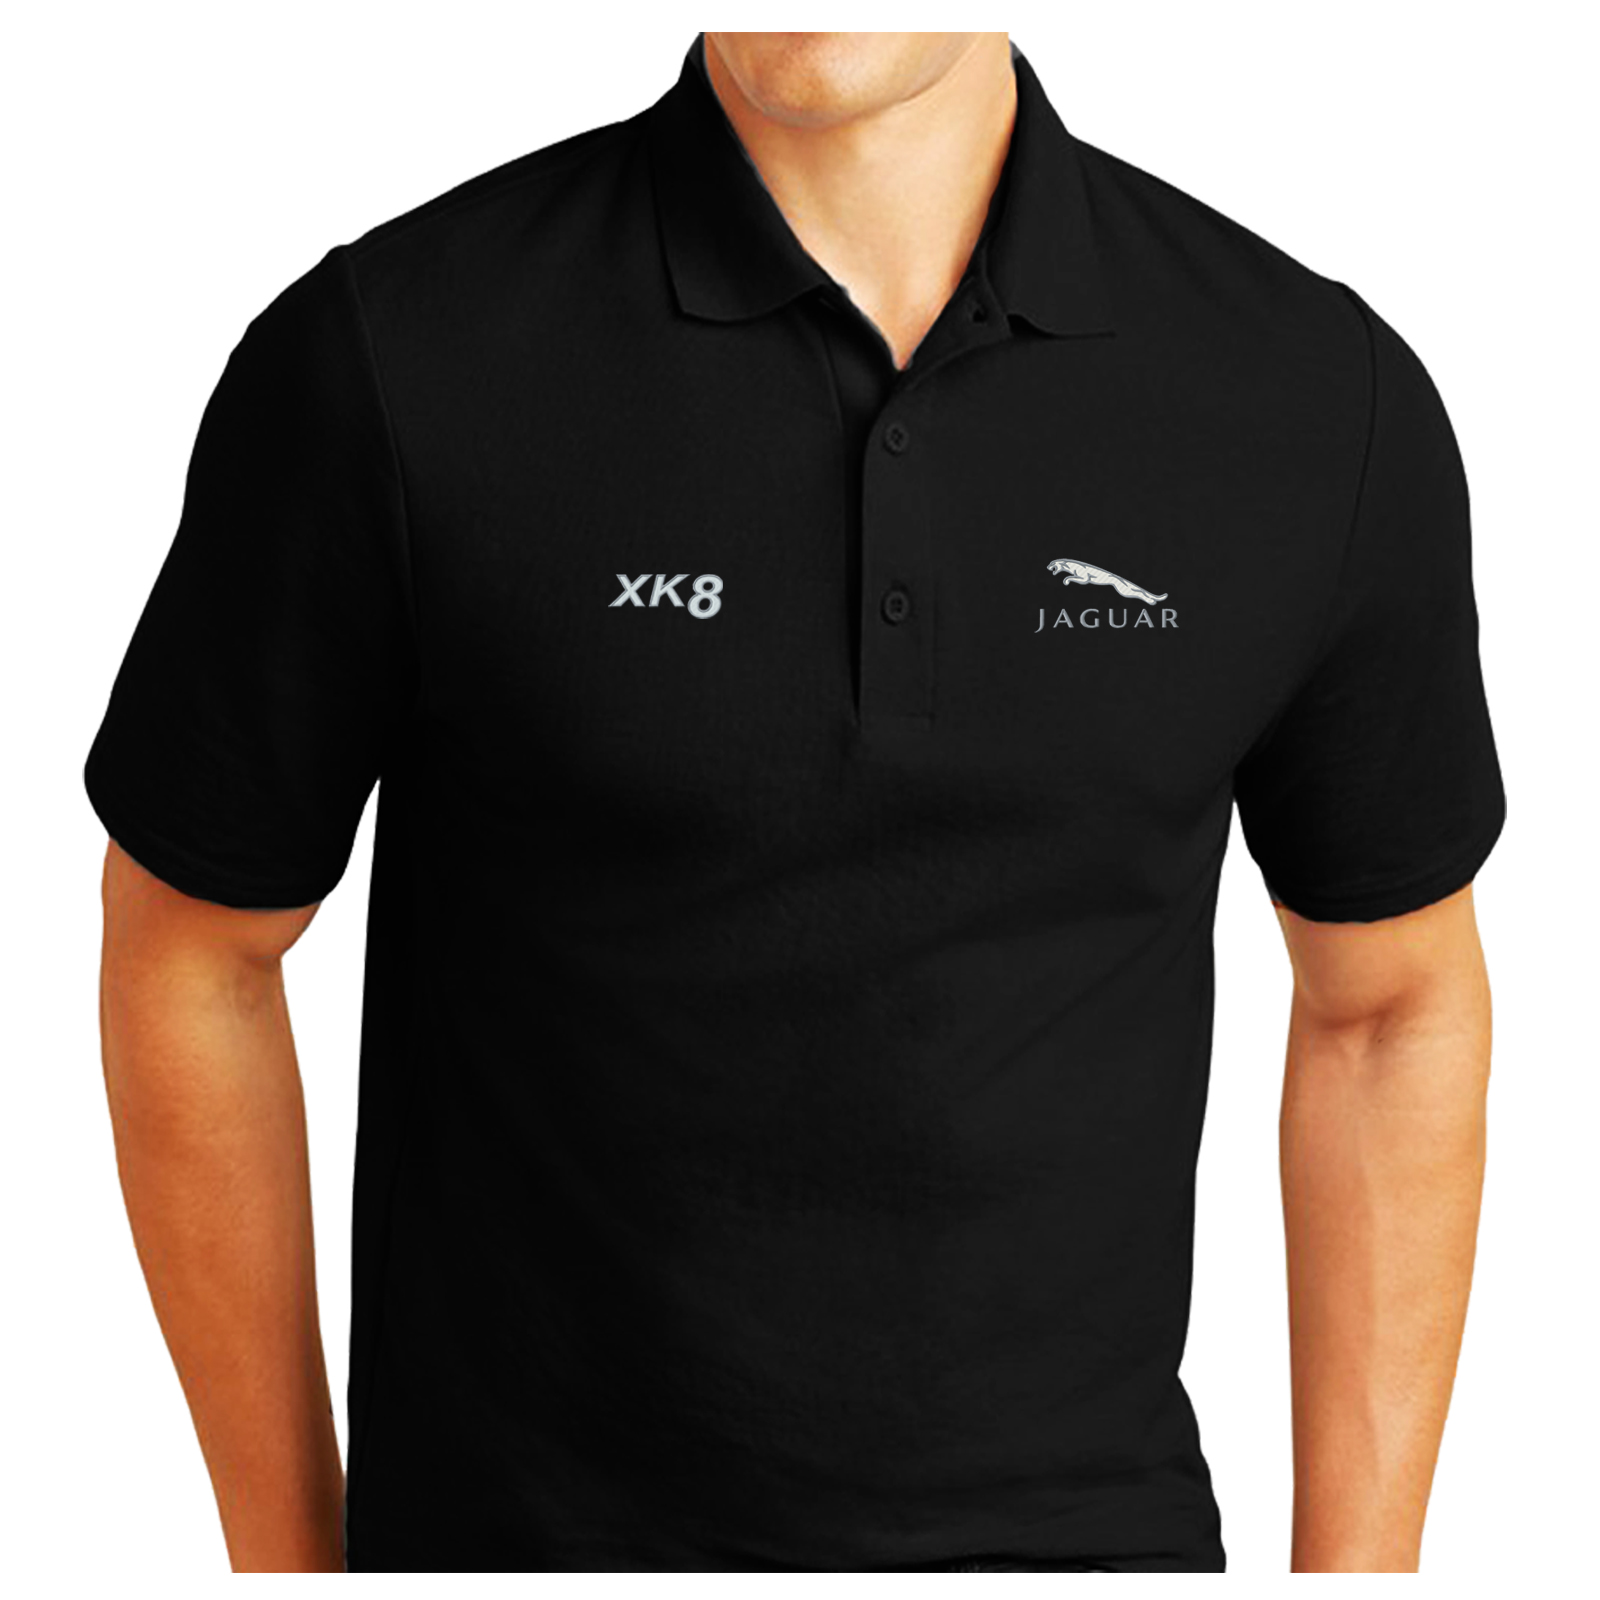 Jaguar Xk8 Logo Embroidered Polo Shirt Fruit Of The Loom Workwear